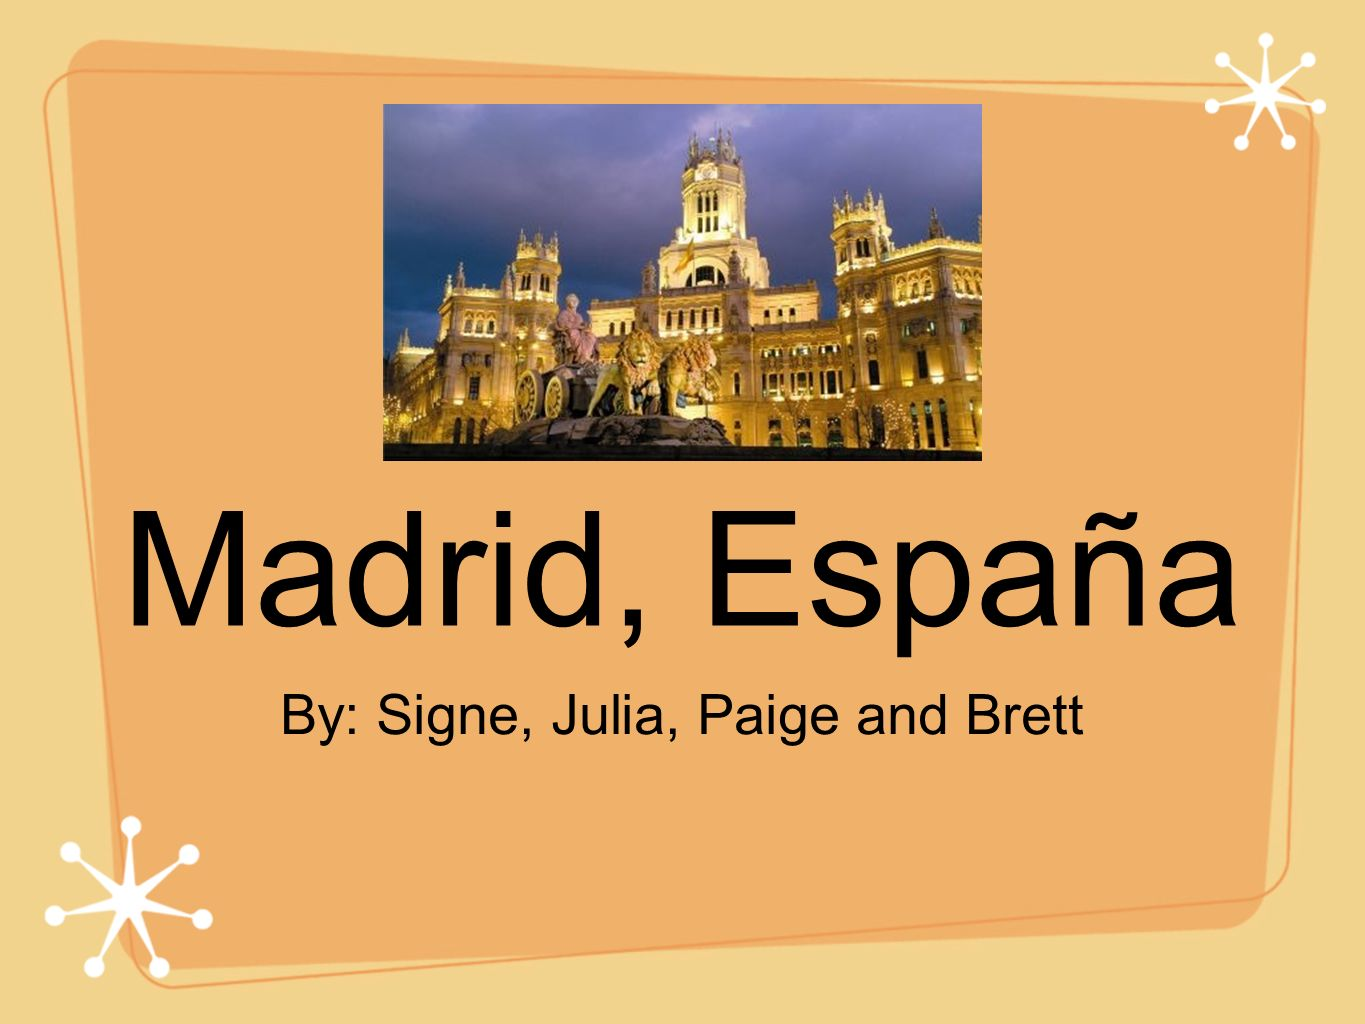 Madrid, España By: Signe, Julia, Paige and Brett